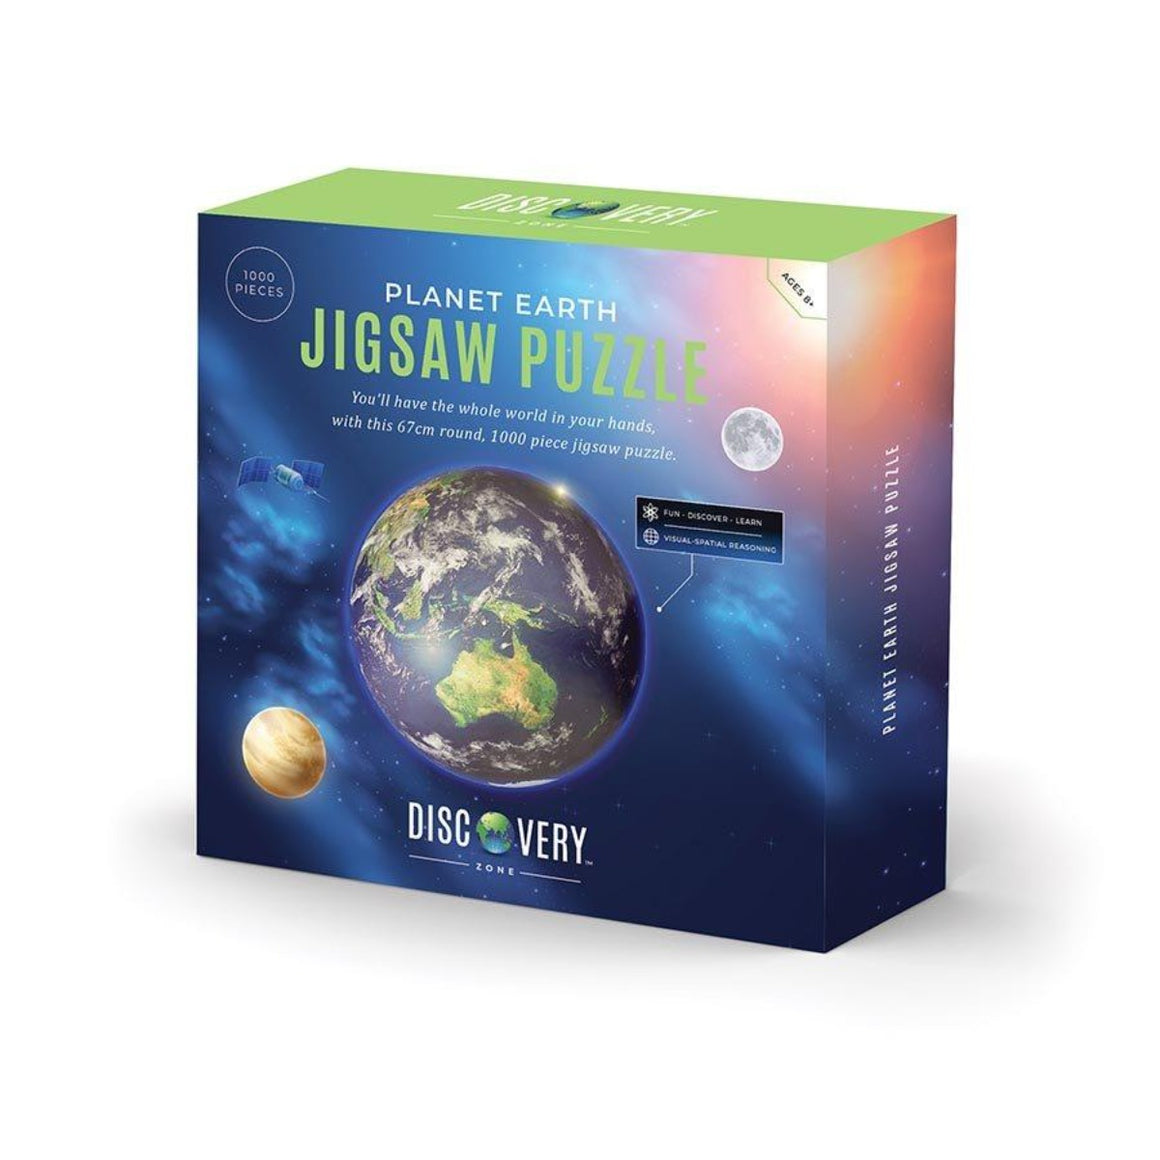 Image of the photograph of the products packaging which features a graphic of the earth, the moon and another planets in space which the text Planet Earth Jigsaw Puzzle - you'll have the whole world in your hands with this 67cm round, 1000 piece jigsaw puzzle with the Discovery Zone logo on the bottom